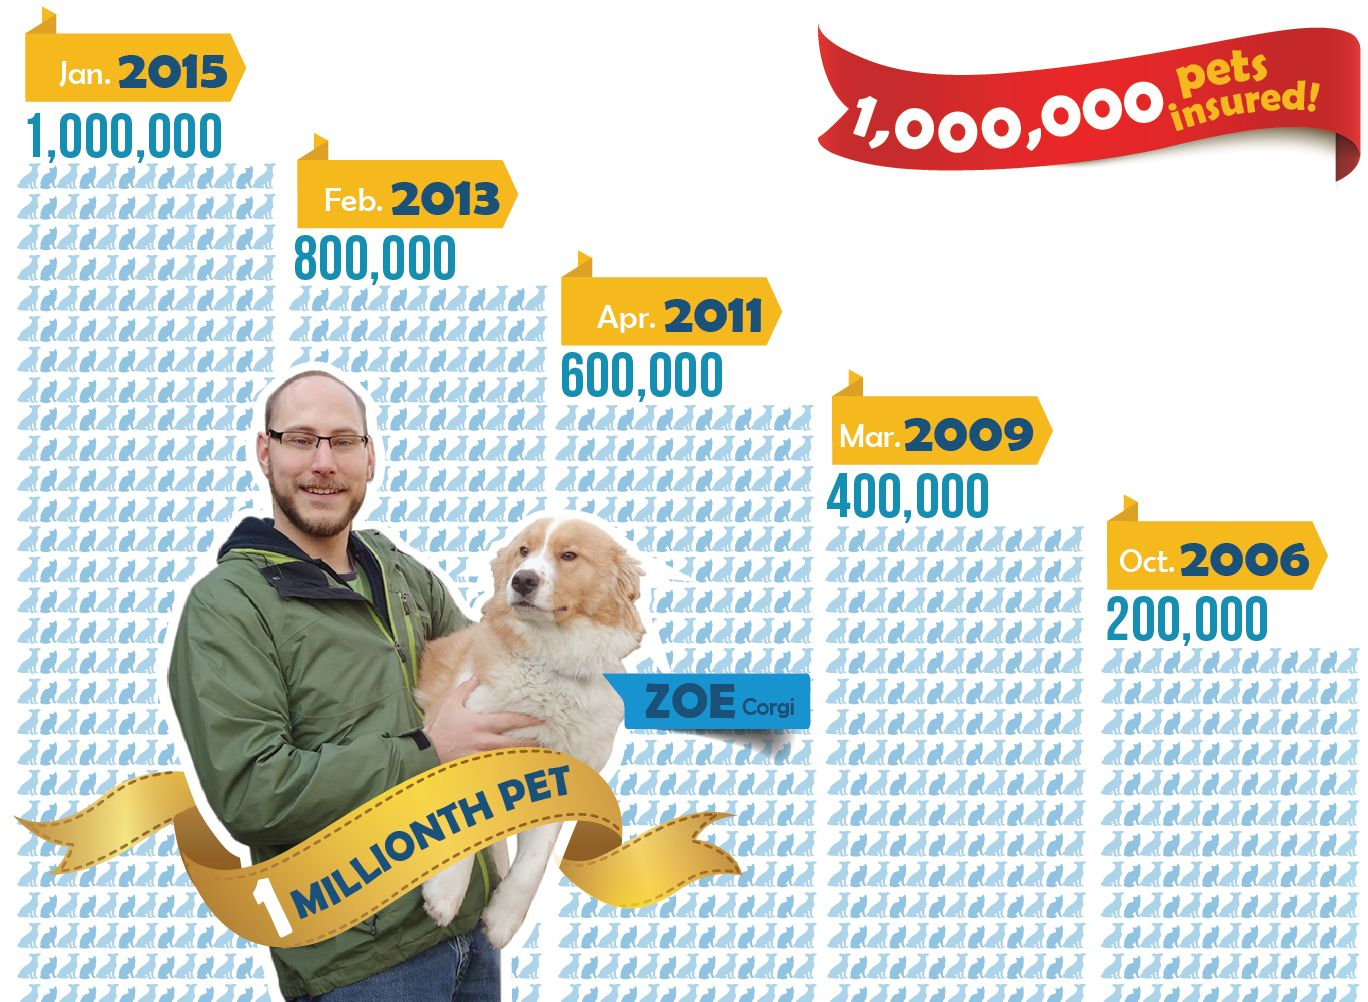 Did You Know We Reached One Million Pets Insured Over Our 25